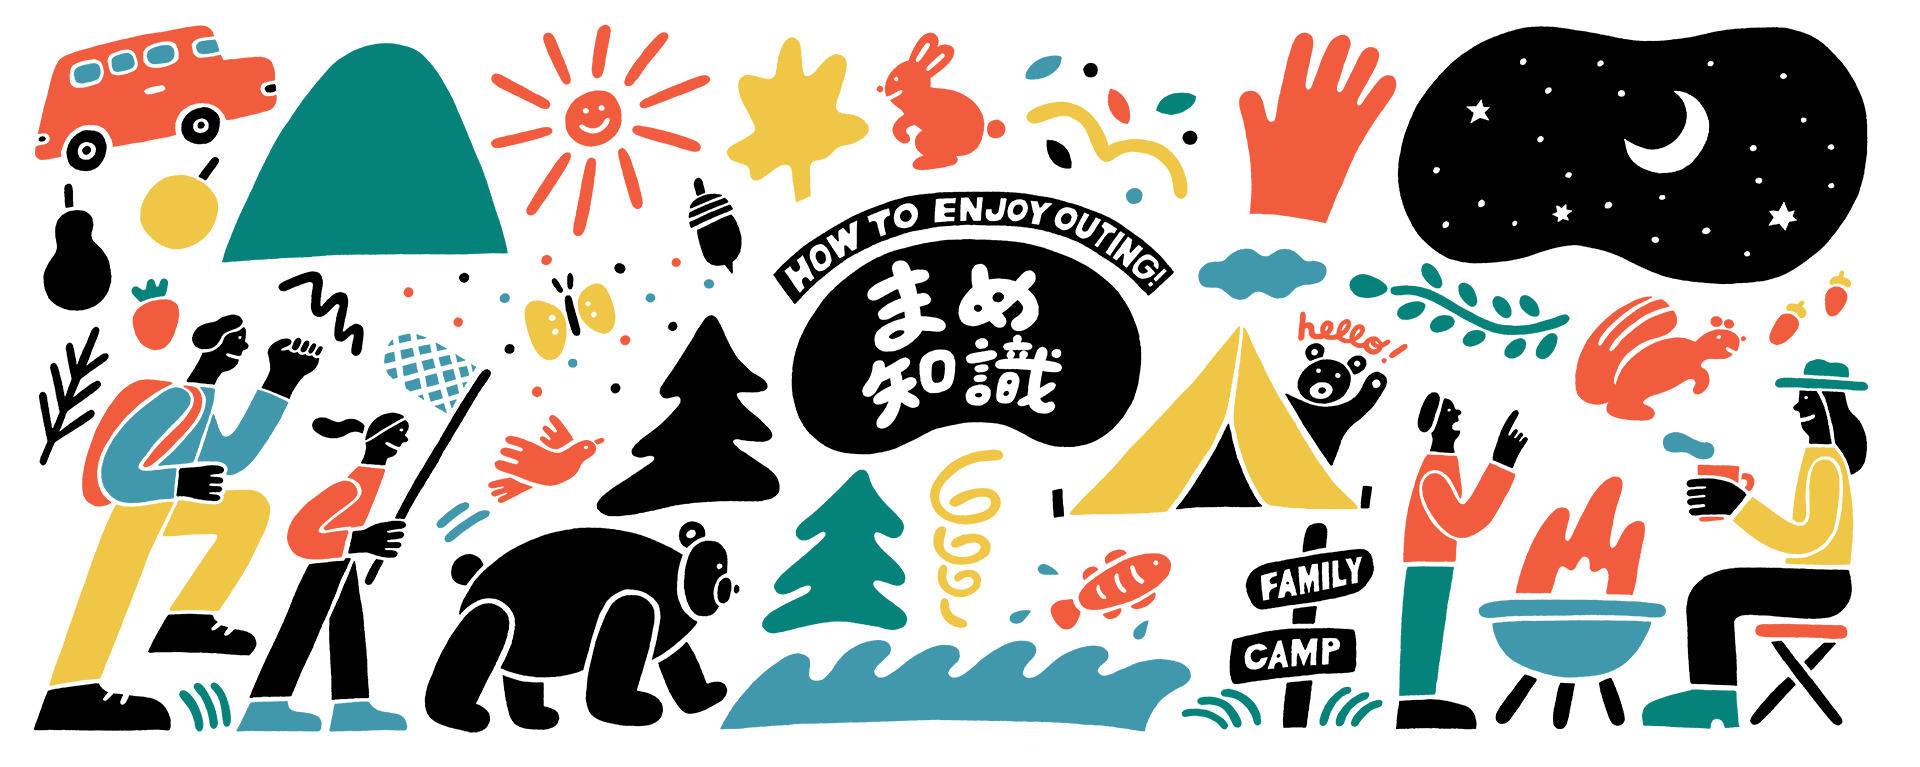 HOW TO ENJOY OUTING! まめ知識